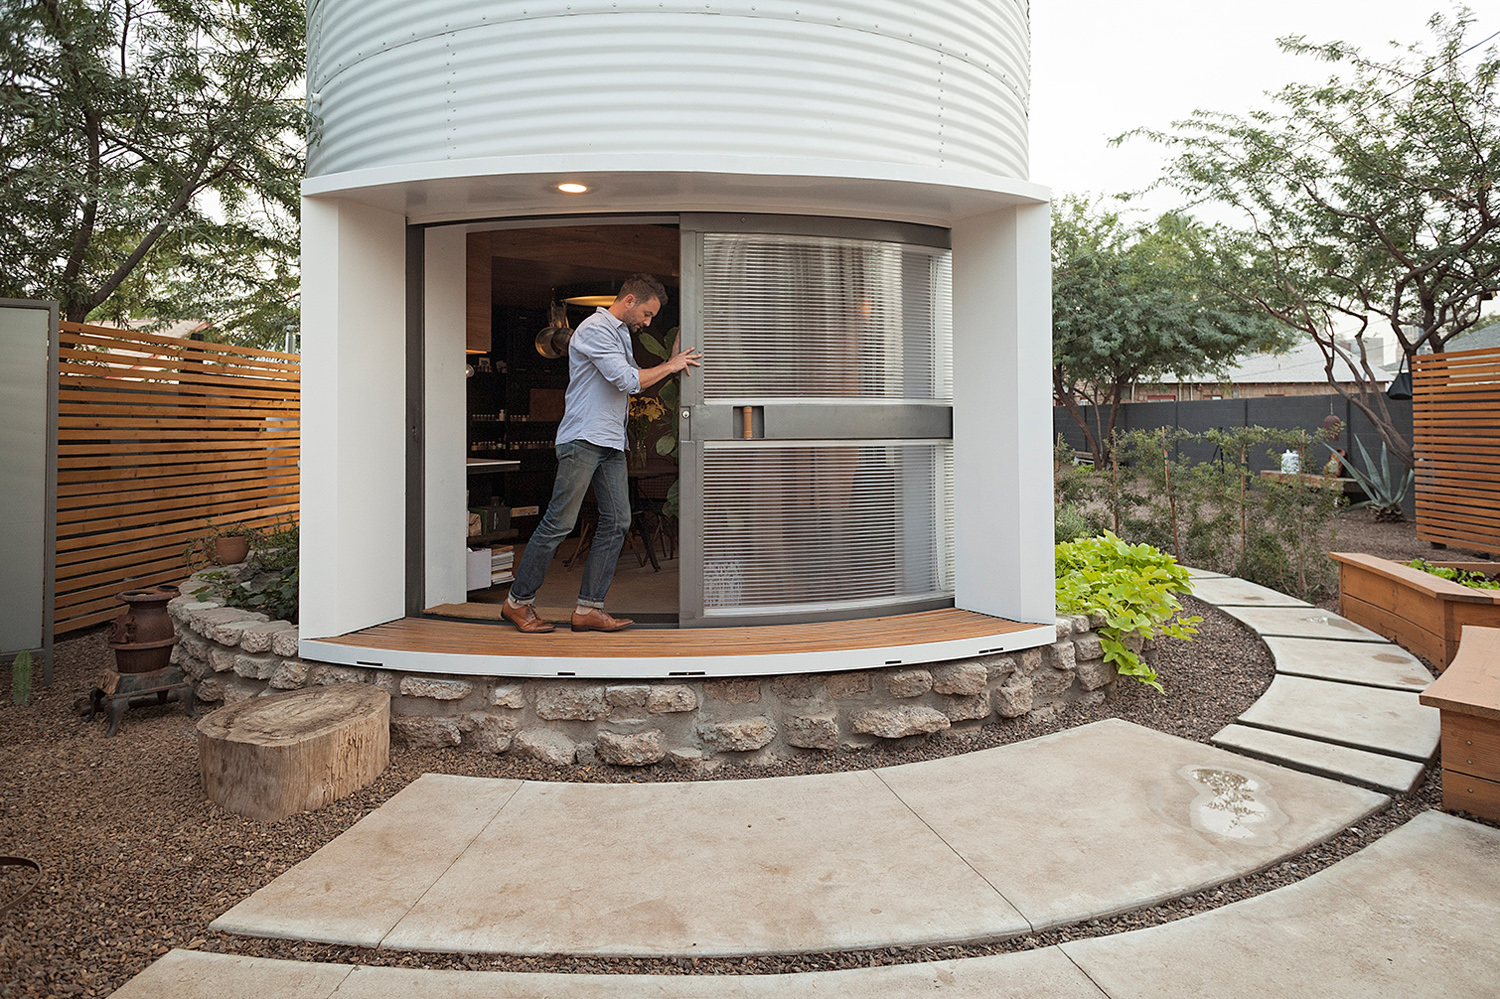 Design Silo House grain silo converted into a cozy 340 square foot small house tiny sleeping loft